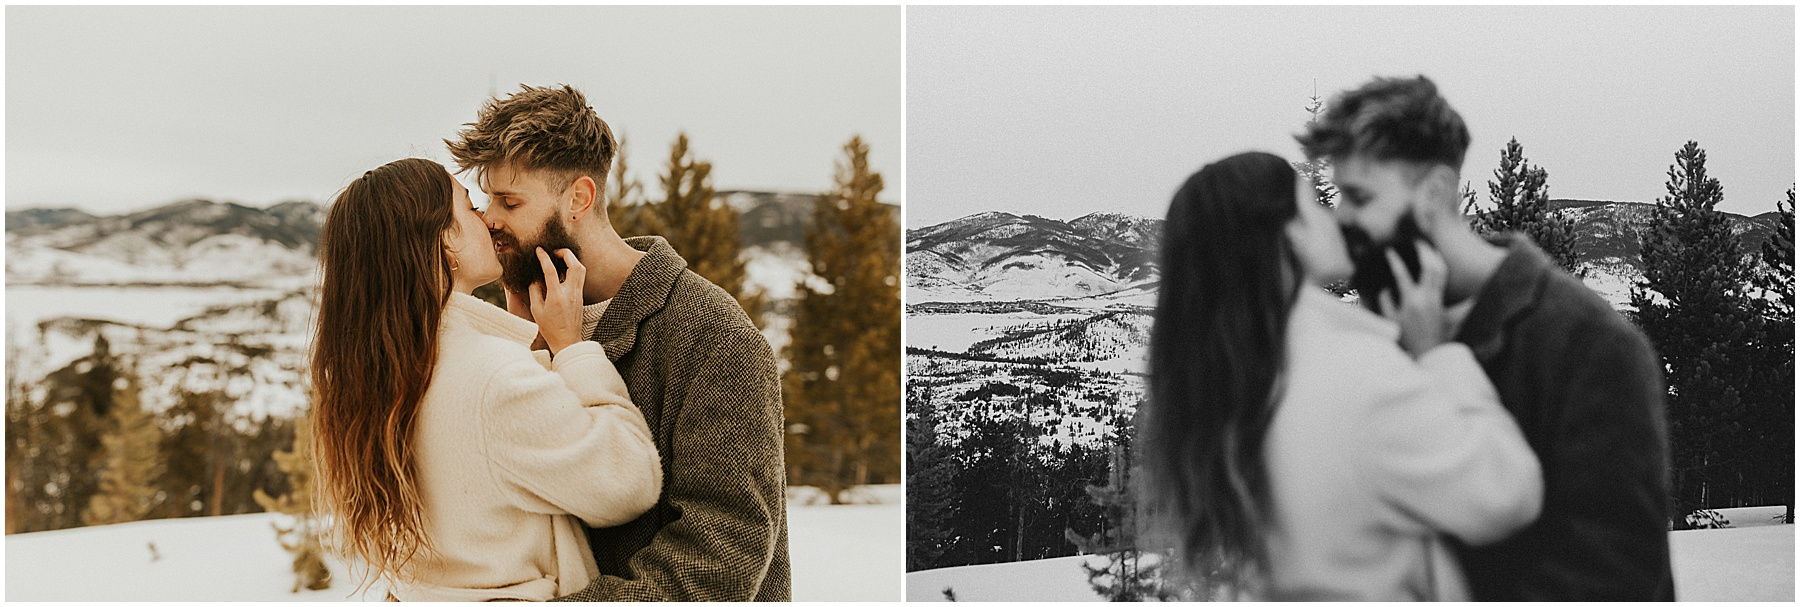 Proposal and engagement session in Breckenridge, Colorado Saphire Point_0410.jpg